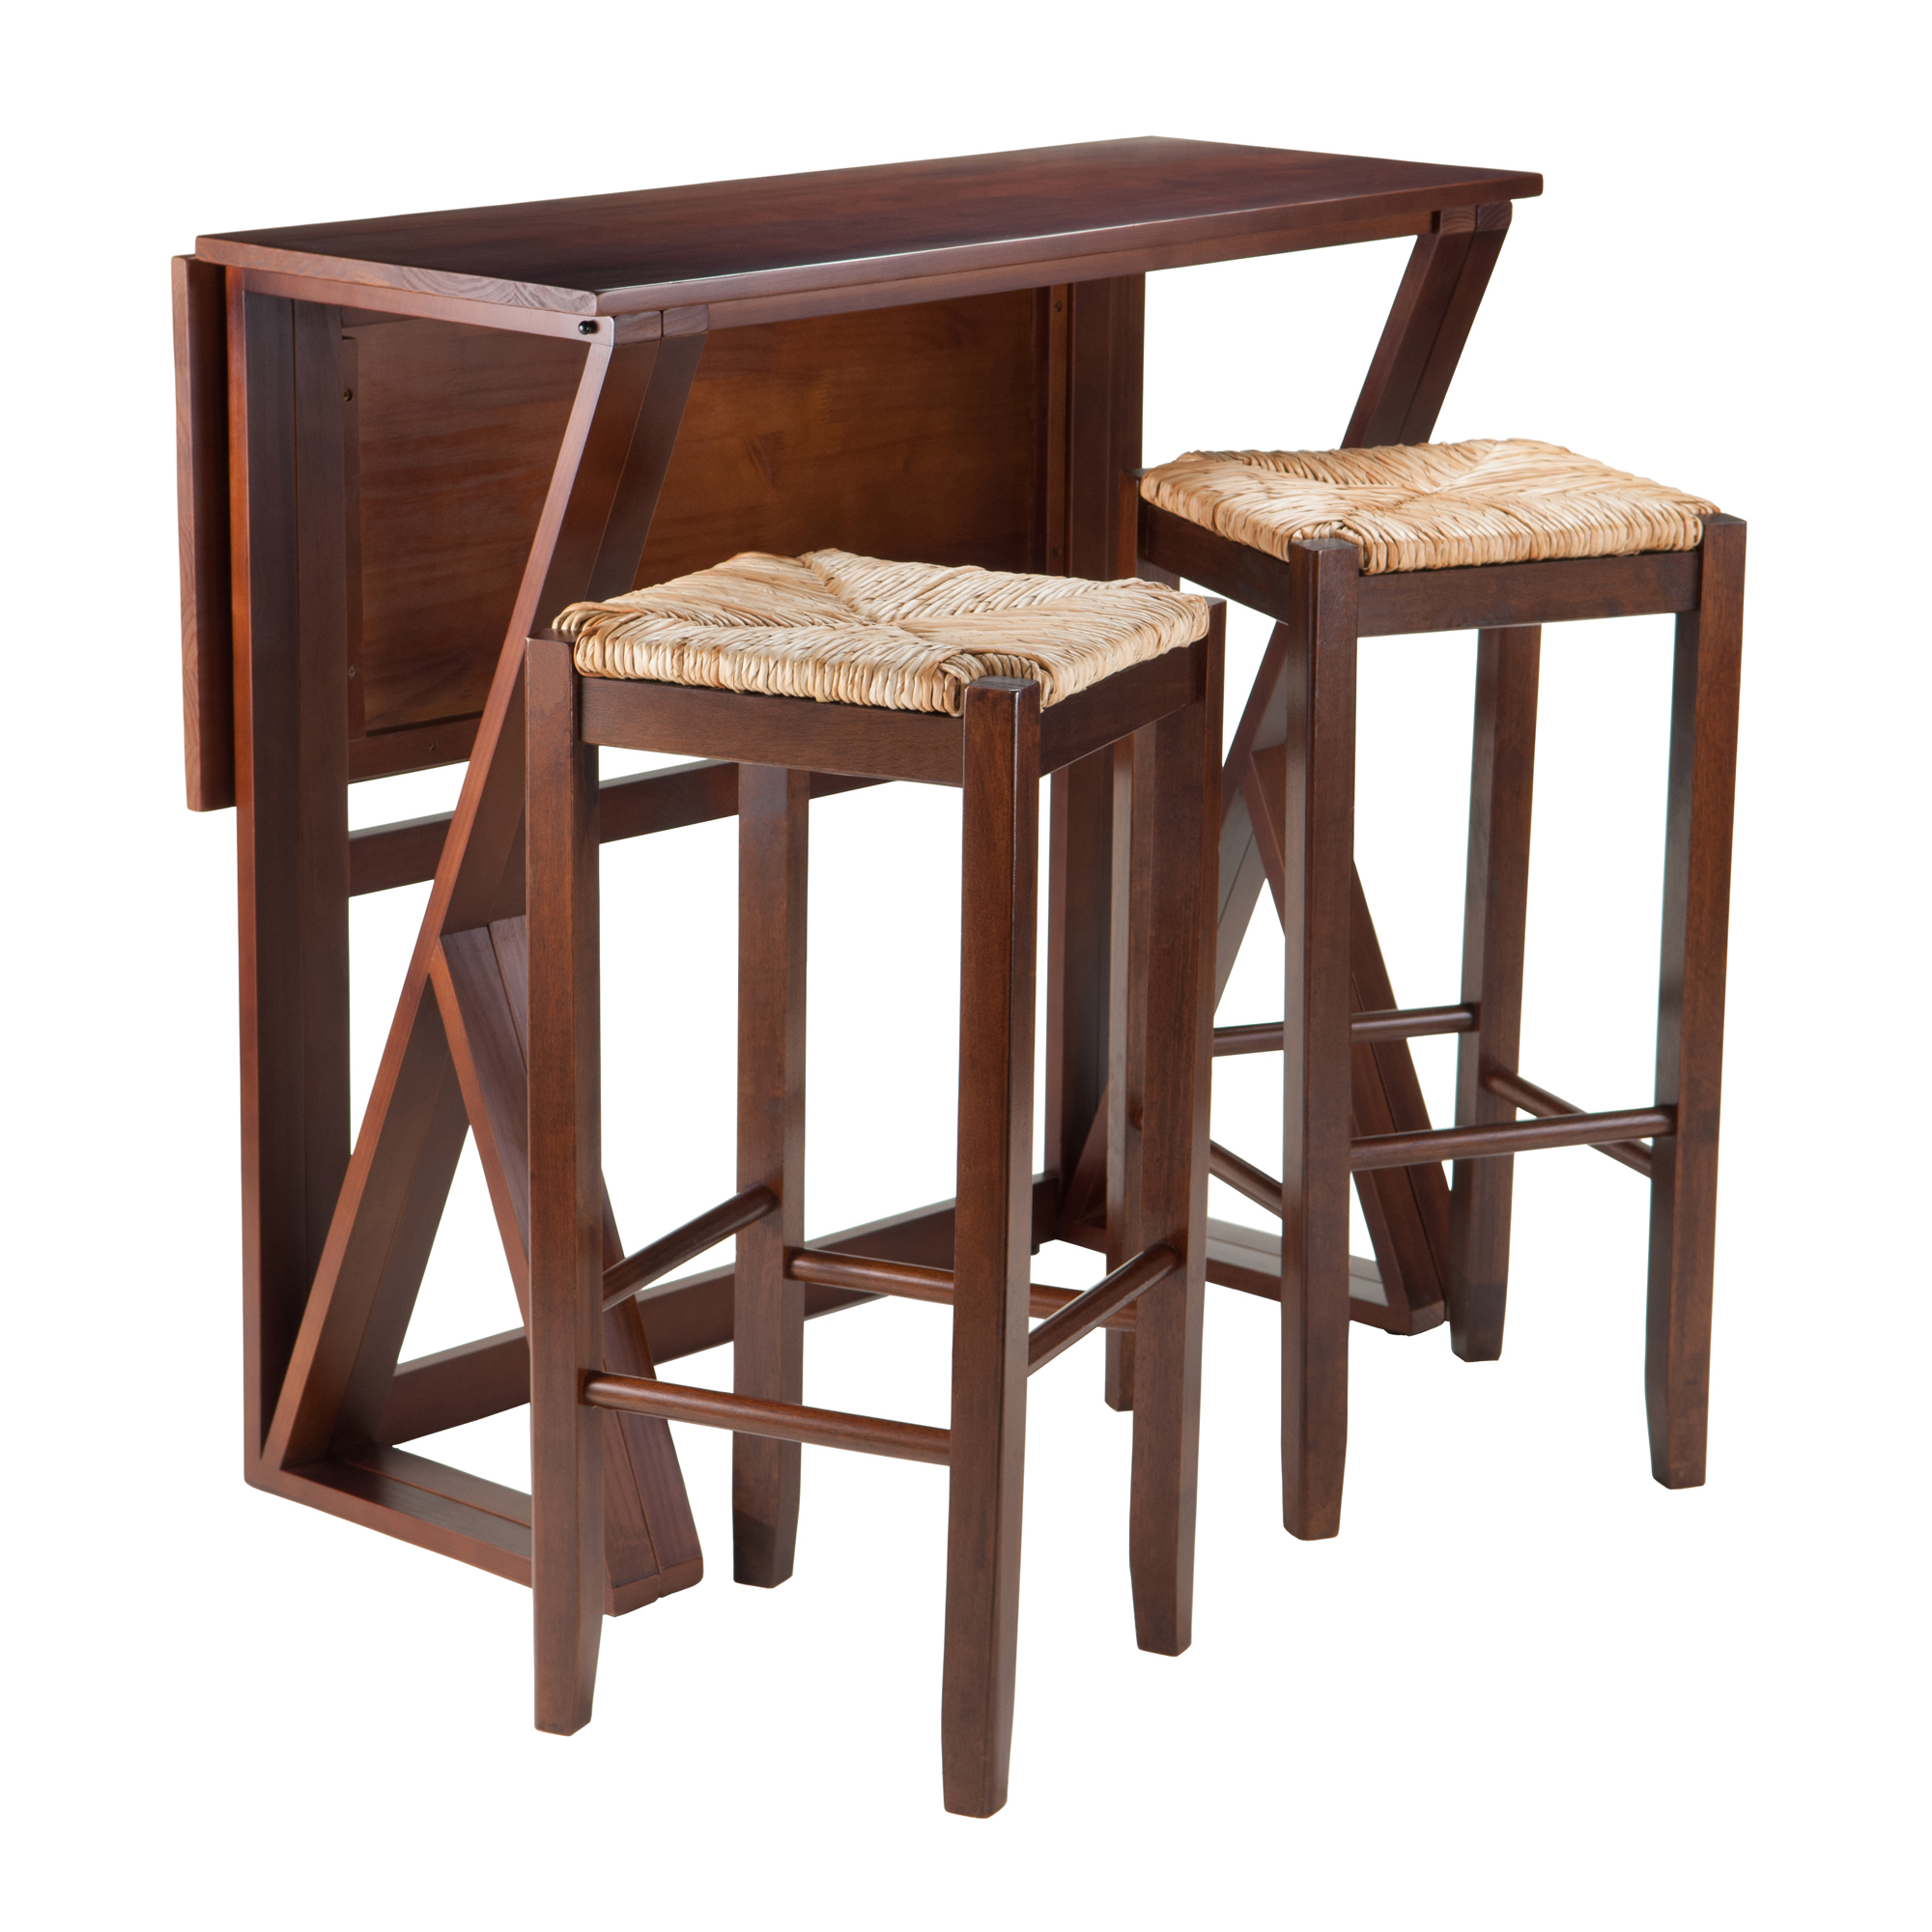 Most Recent Winsome Wood Harrington 3 Piece Wood Dining Set With Drop Leaf Within Transitional Antique Walnut Drop Leaf Casual Dining Tables (View 24 of 25)